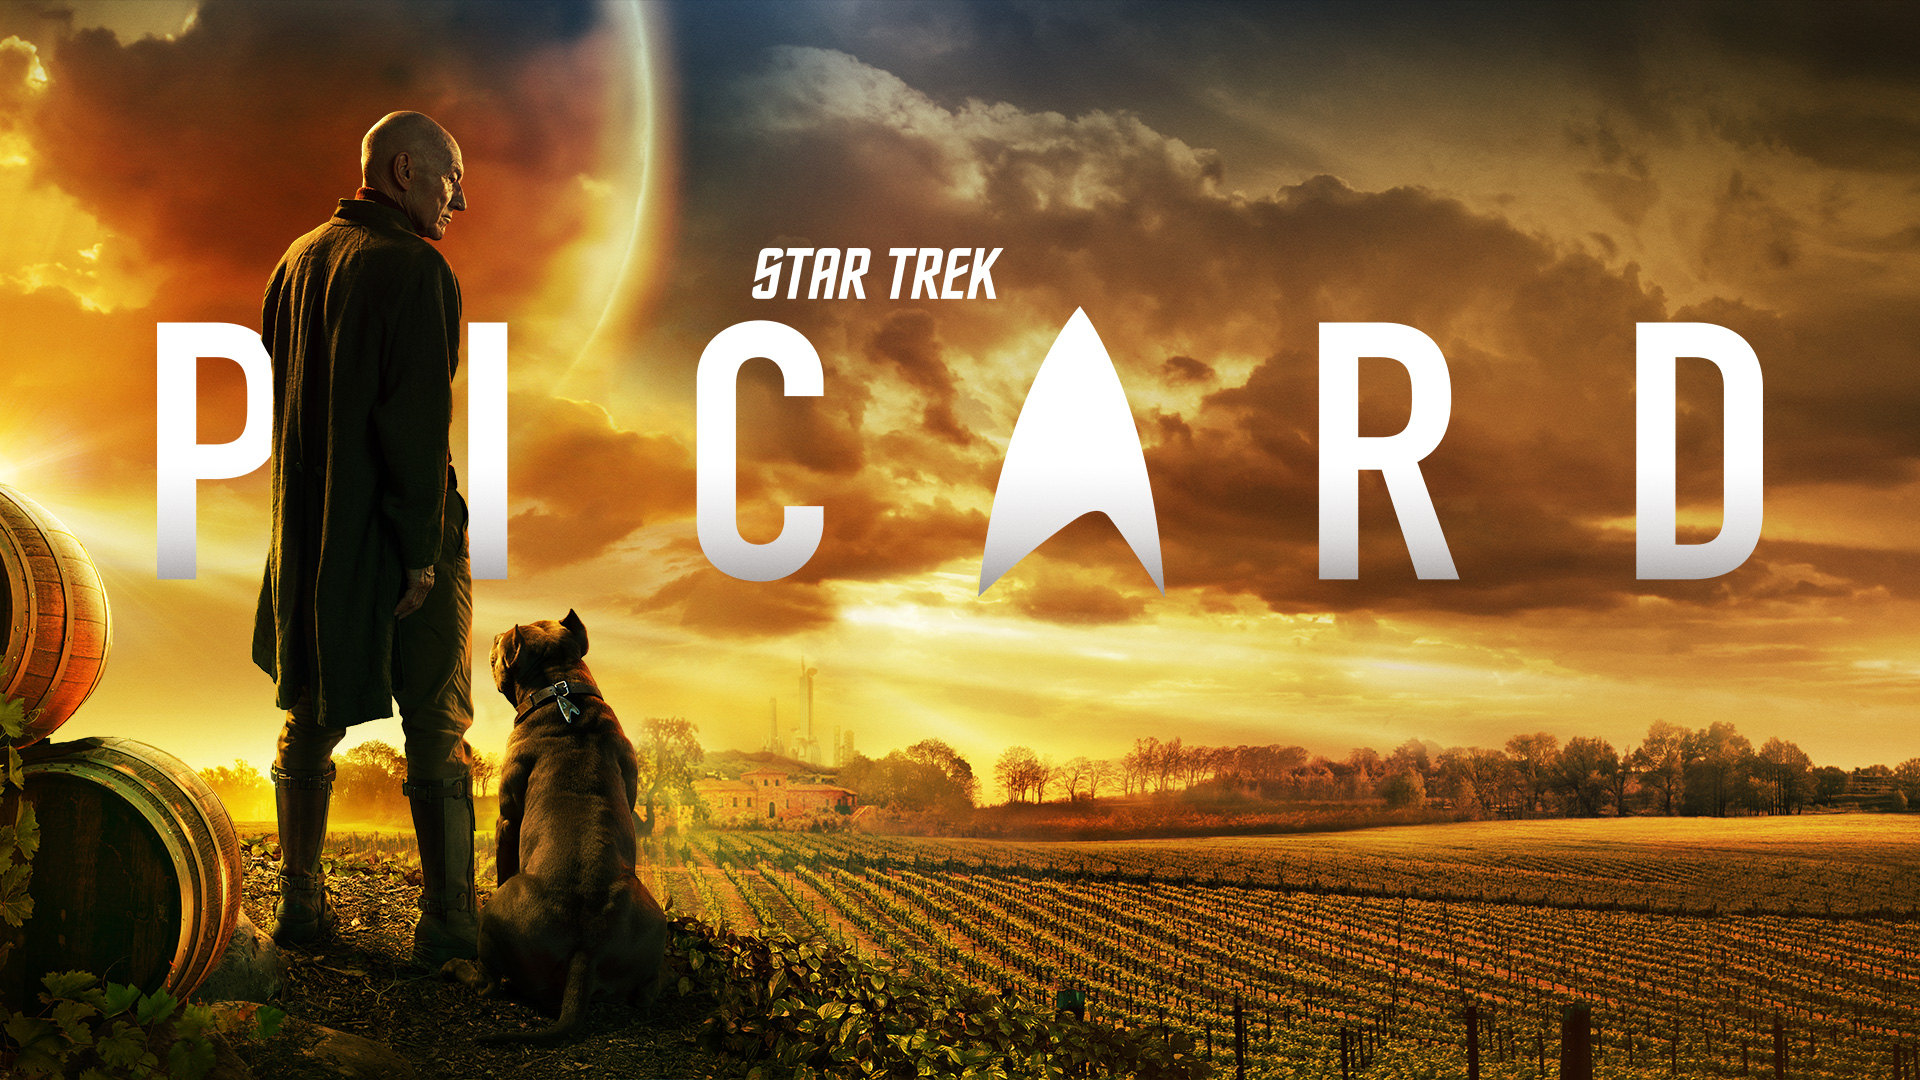 , Star Trek: Picard Season 2 Release Date And What Is Storyline?